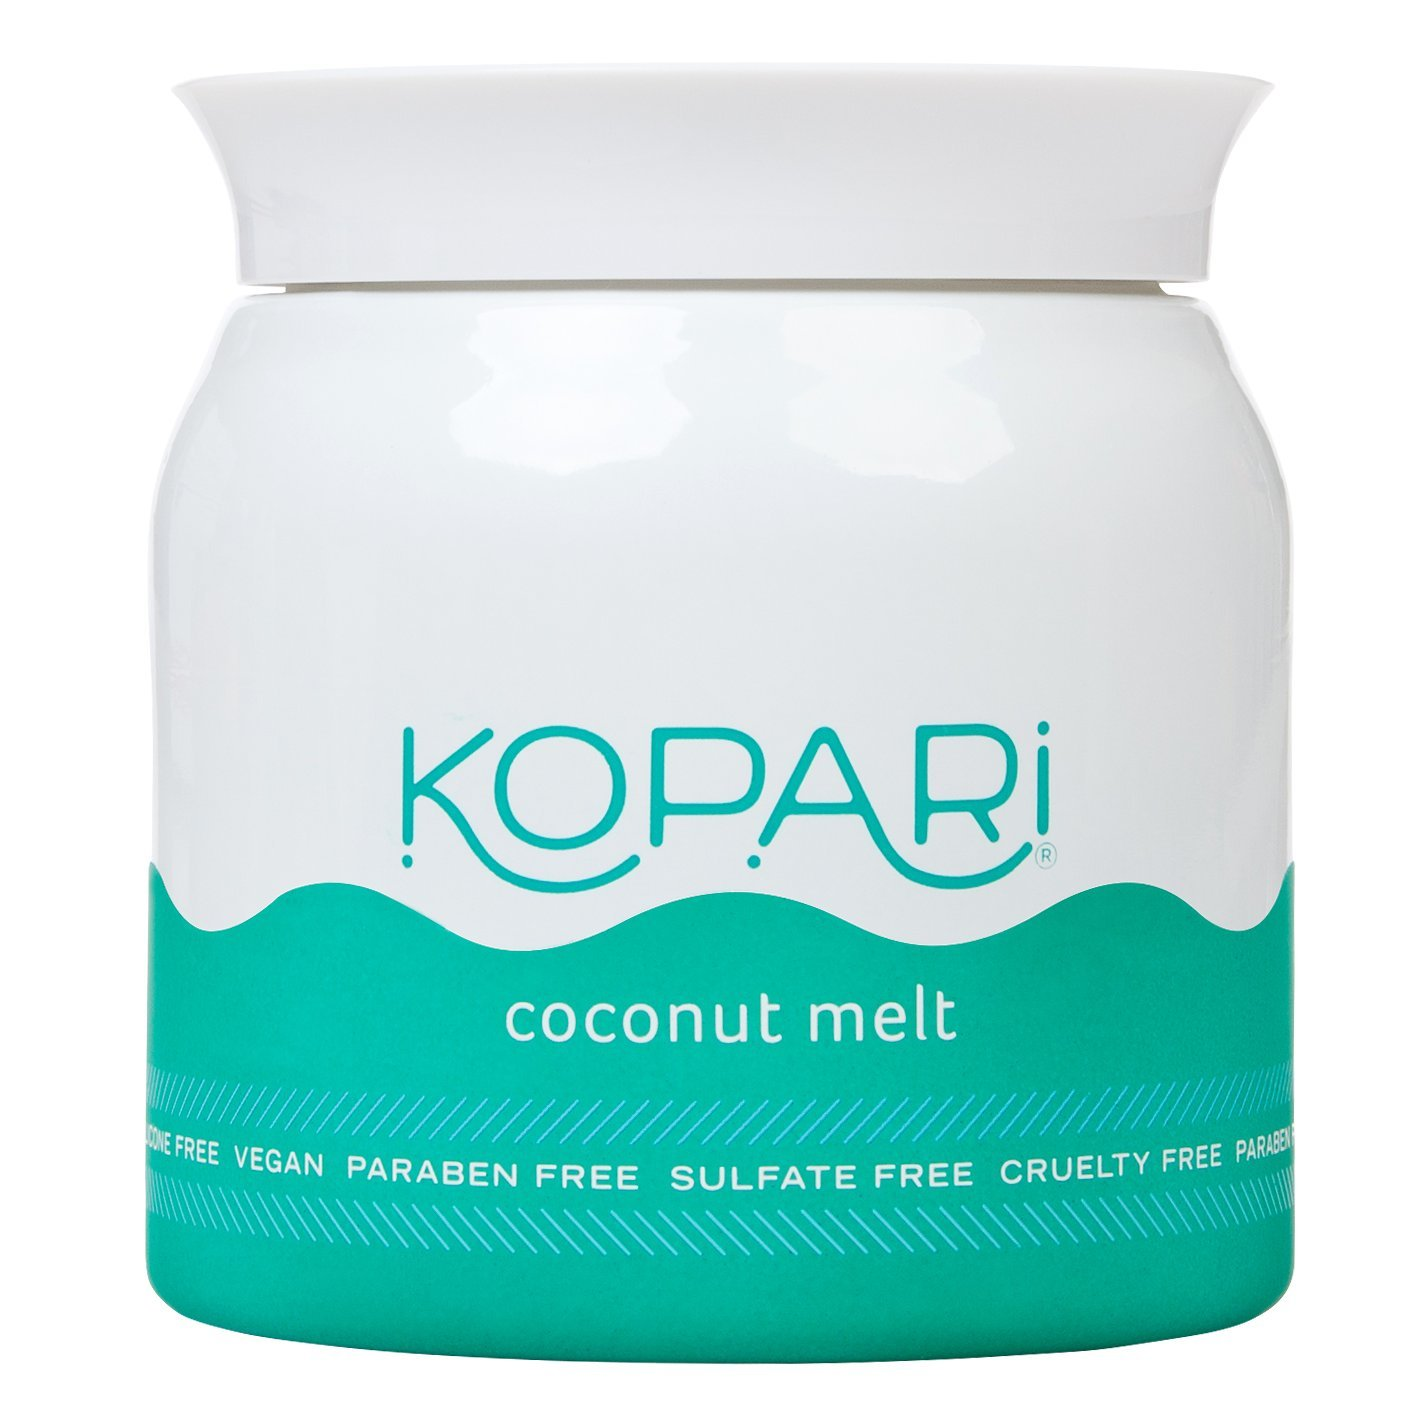 Kopari Organic Coconut Melt - All-over Skin Moisturizing, Under Eye Rescuing, Hair Conditioning + More With 100% Organic Coconut Oil, Non GMO, Vegan, Cruelty Free, Paraben Free and Sulfate Free 7.0 Oz by Kopari (Image #1)